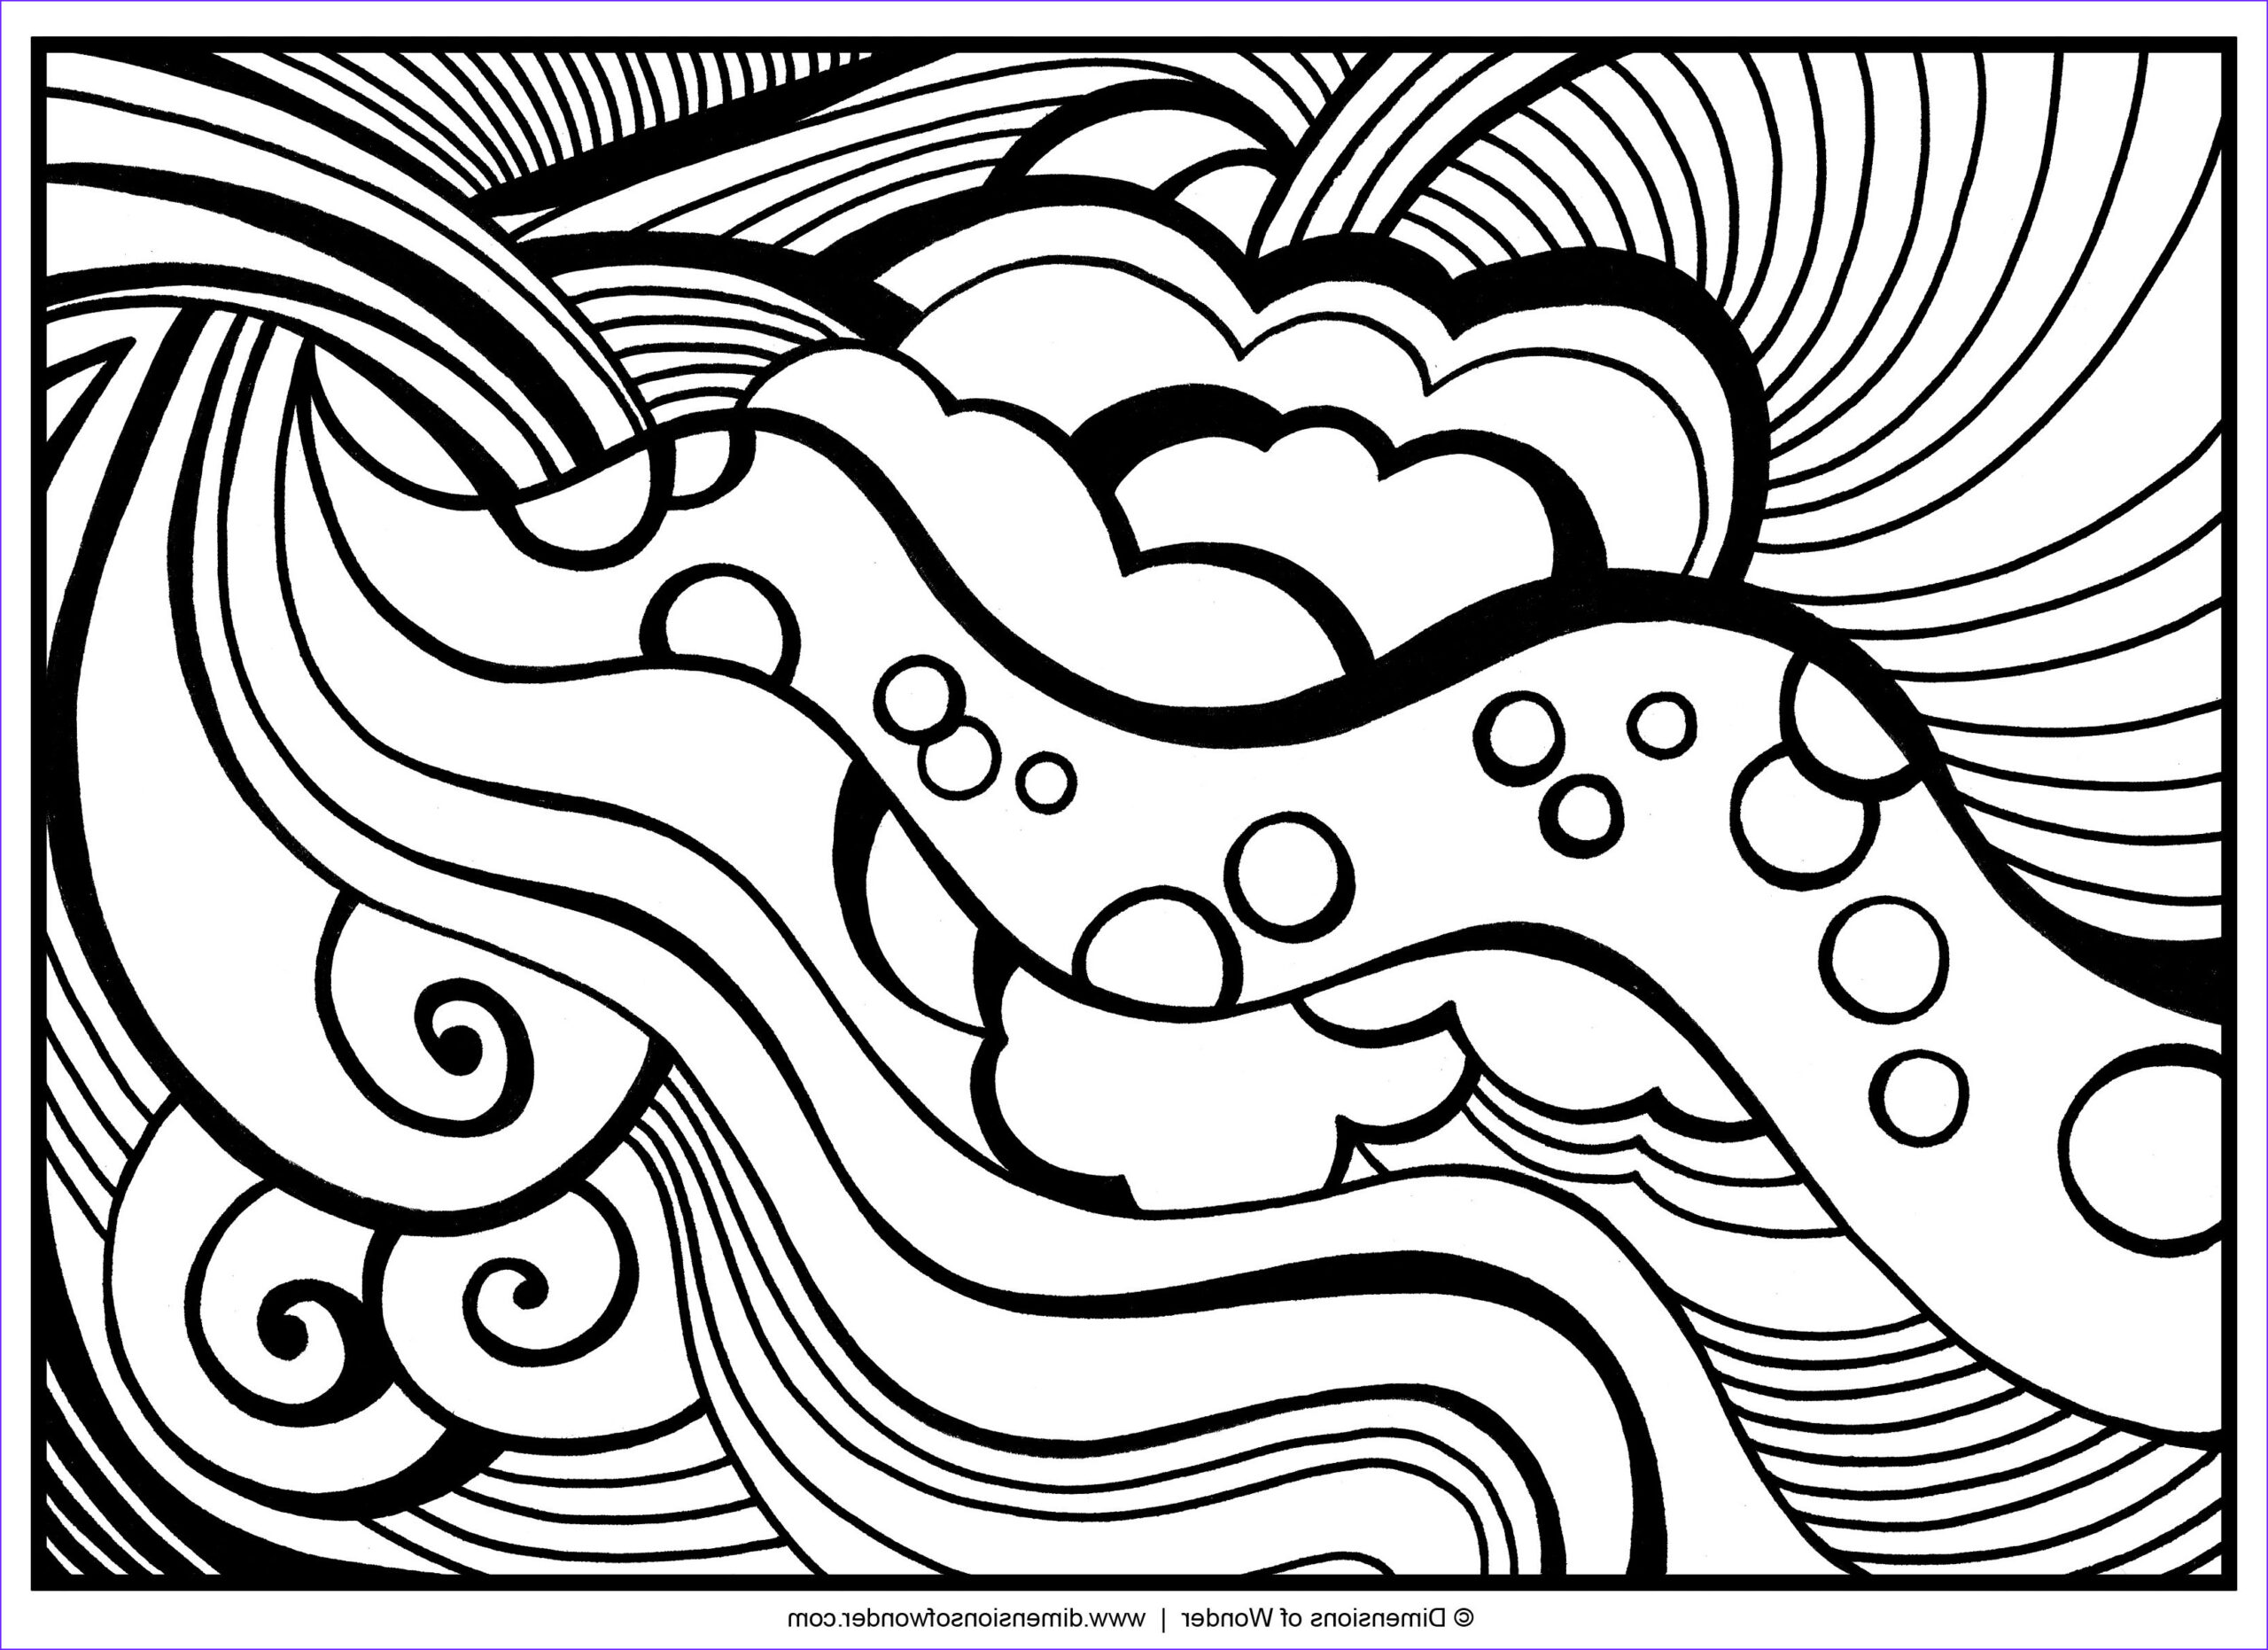 Free Printable Easy Adult Coloring Pages Inspirational Photos Abstract Coloring Pages Free